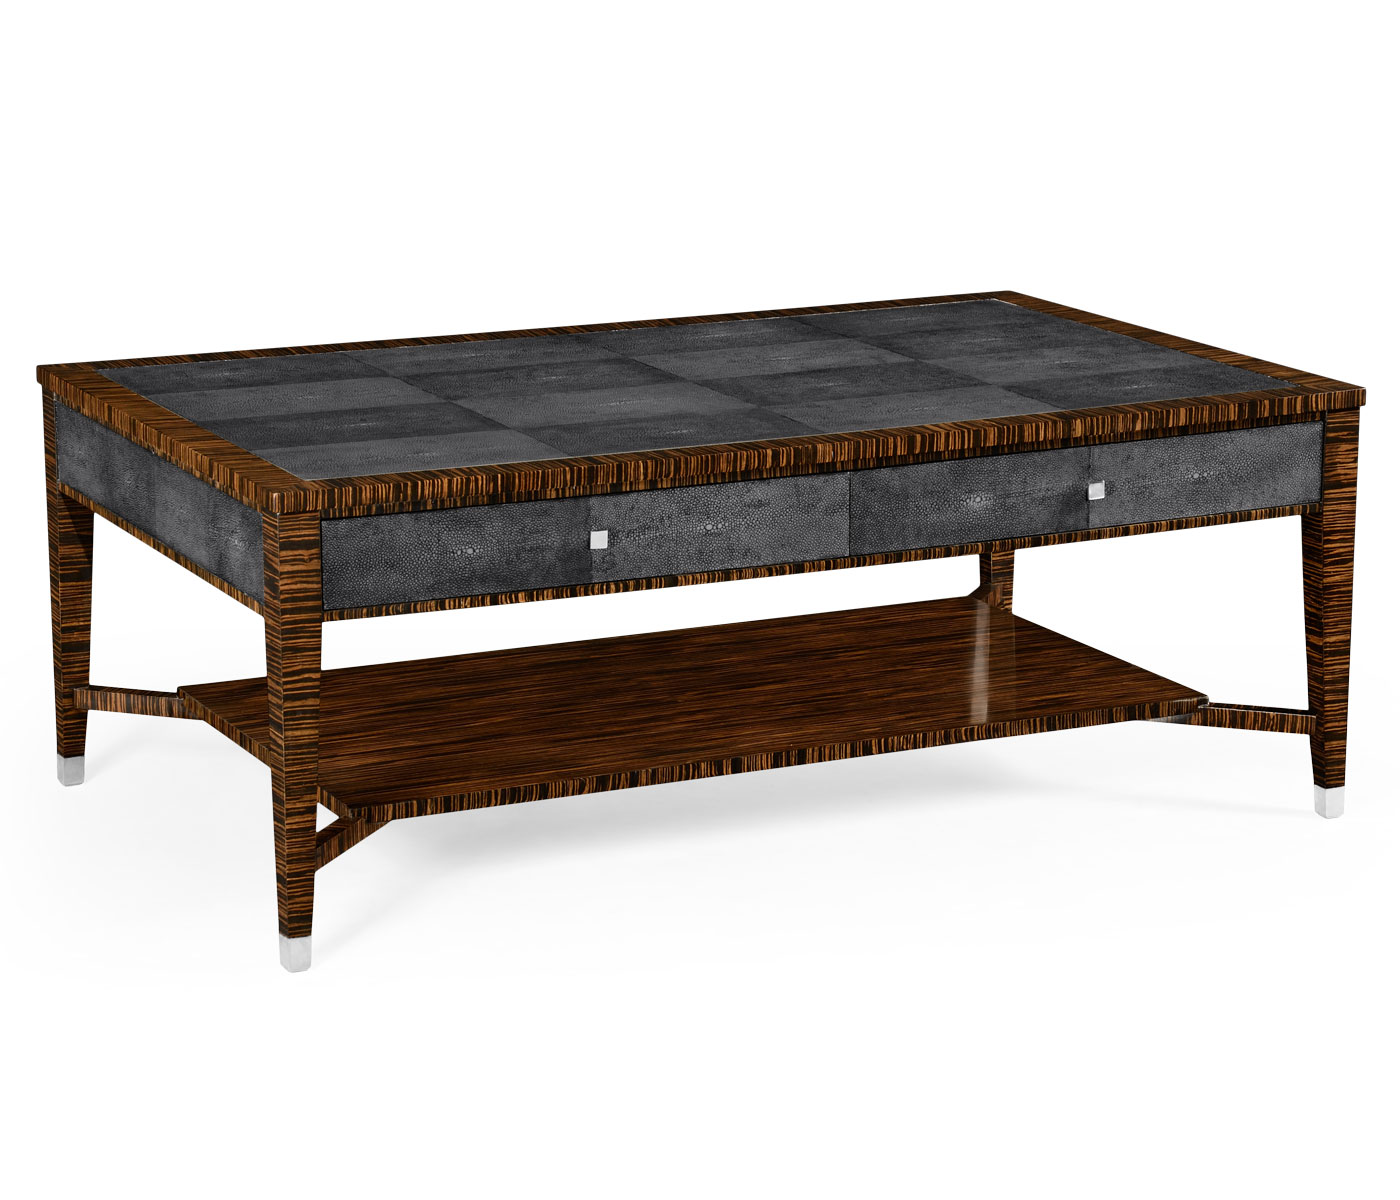 Excellent Faux Macassar Ebony & Anthracite Shagreen Coffee Table HJ22